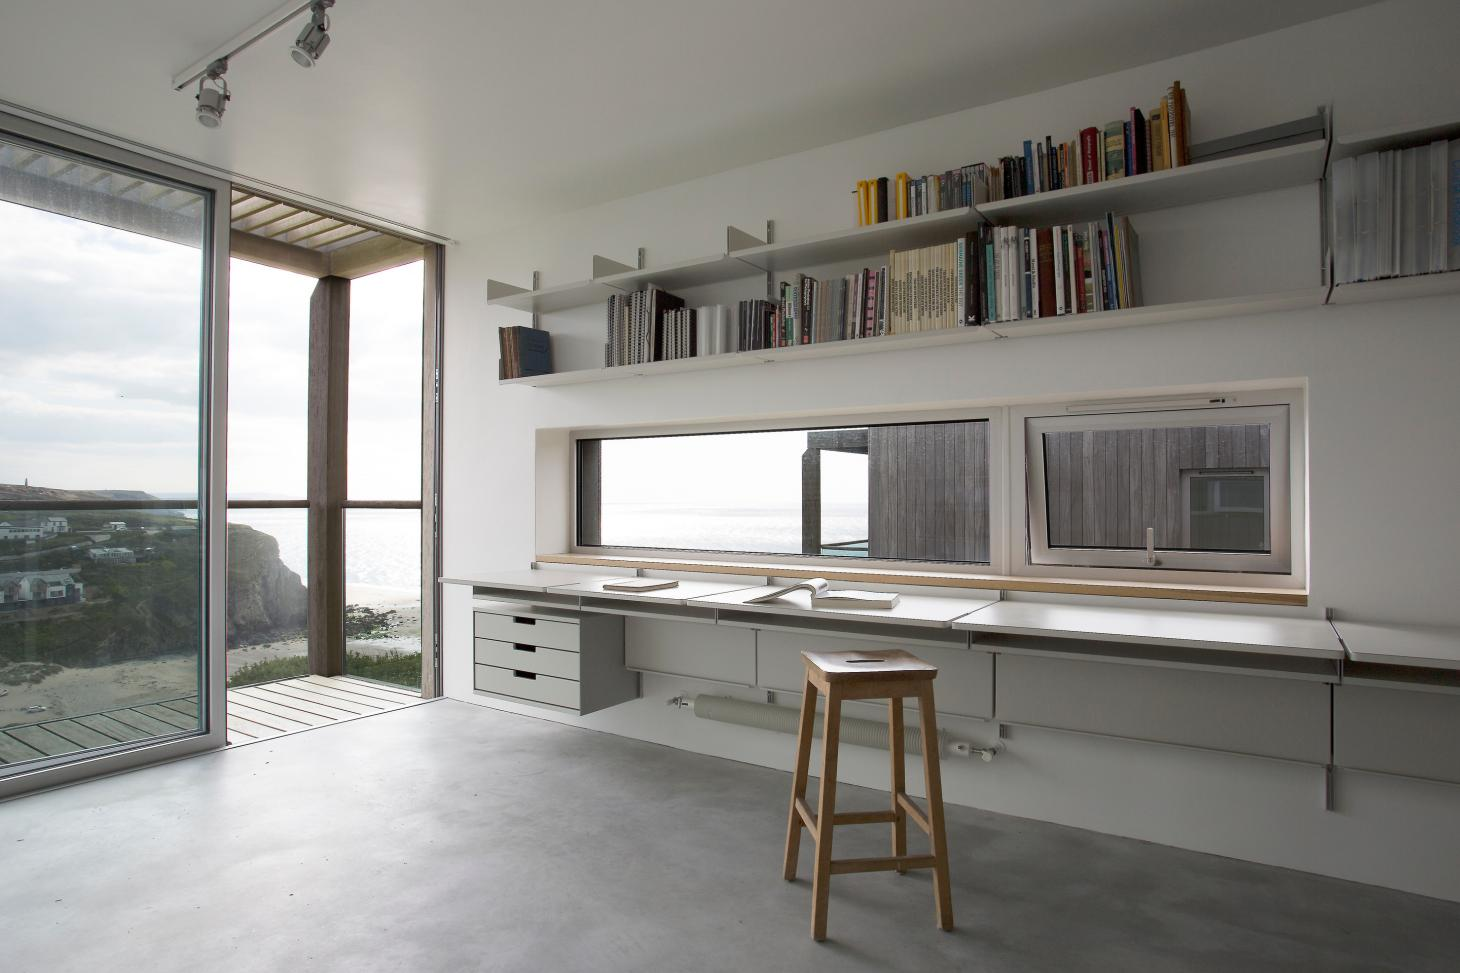 Vitsoe shelving with desks by Dieter Rams installed in office with large window overlooking a beach